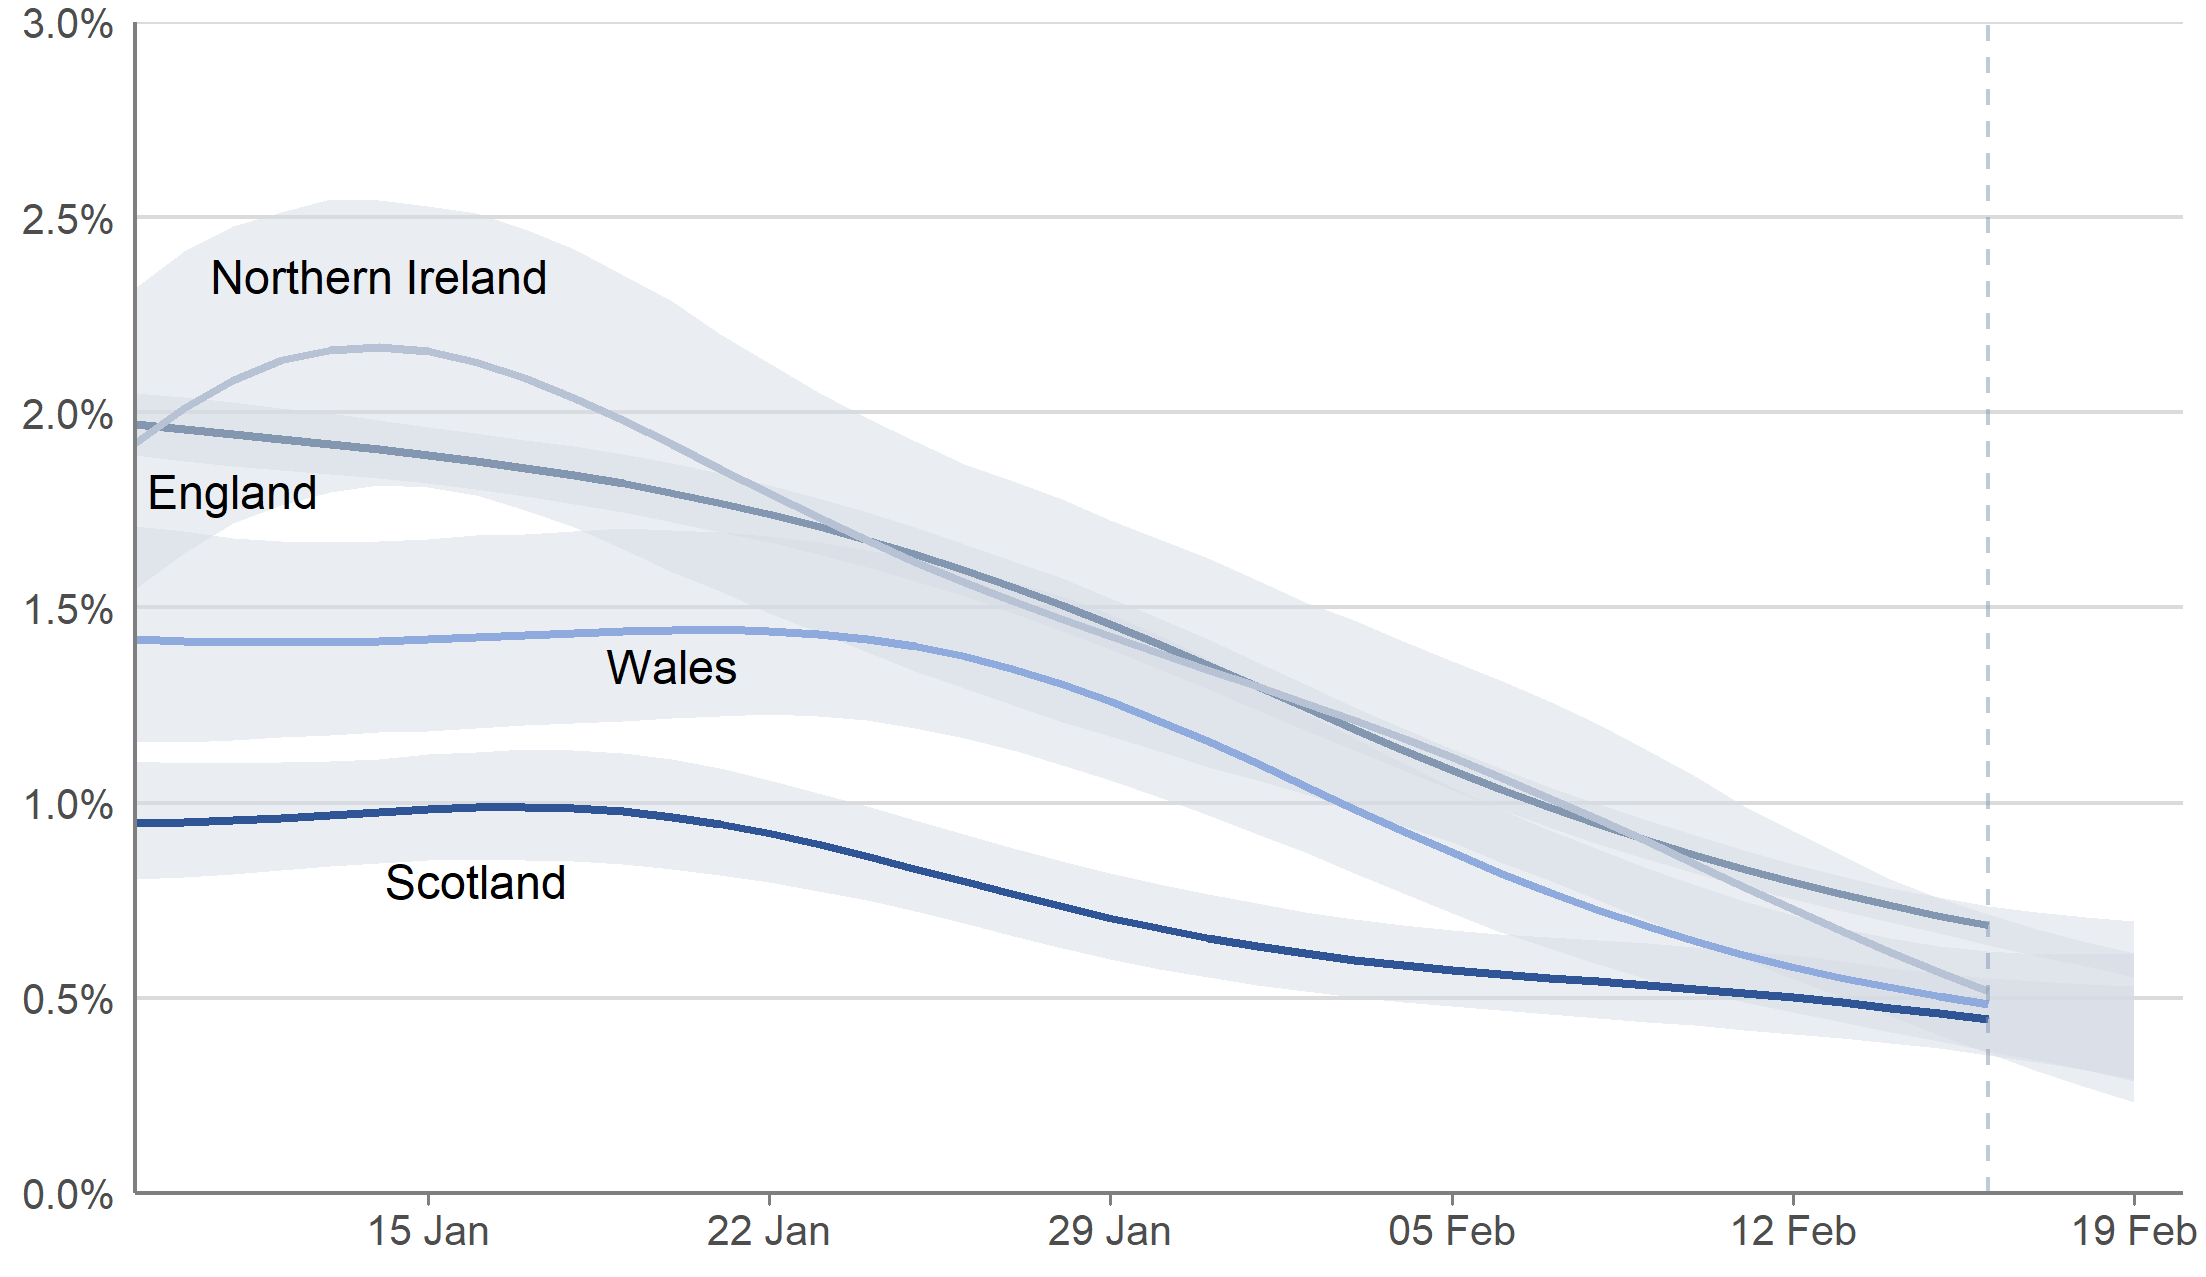 Modelled estimates of the percentage of the population testing positive for COVID-19 in each of the four nations of the UK, between 9 January and 19 February 2021 including 95% credible intervals (See notes 1,3,4,5,6)